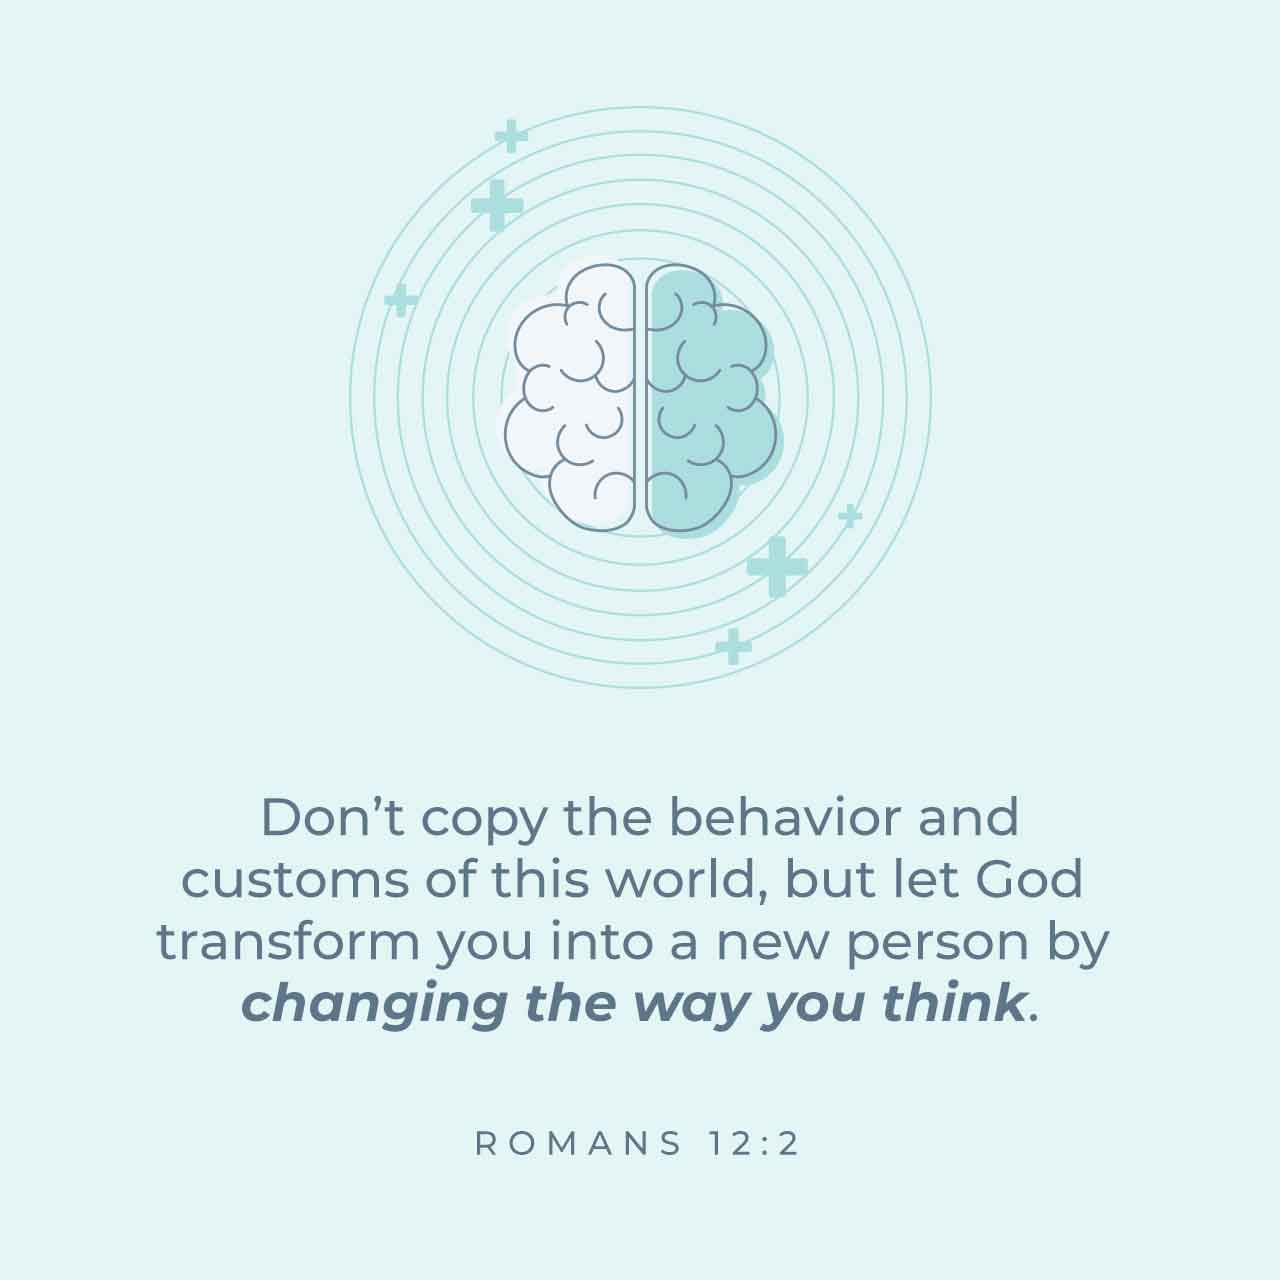 Bible Verse of the Day - day 307 - image 42451 (Romans 12:2)